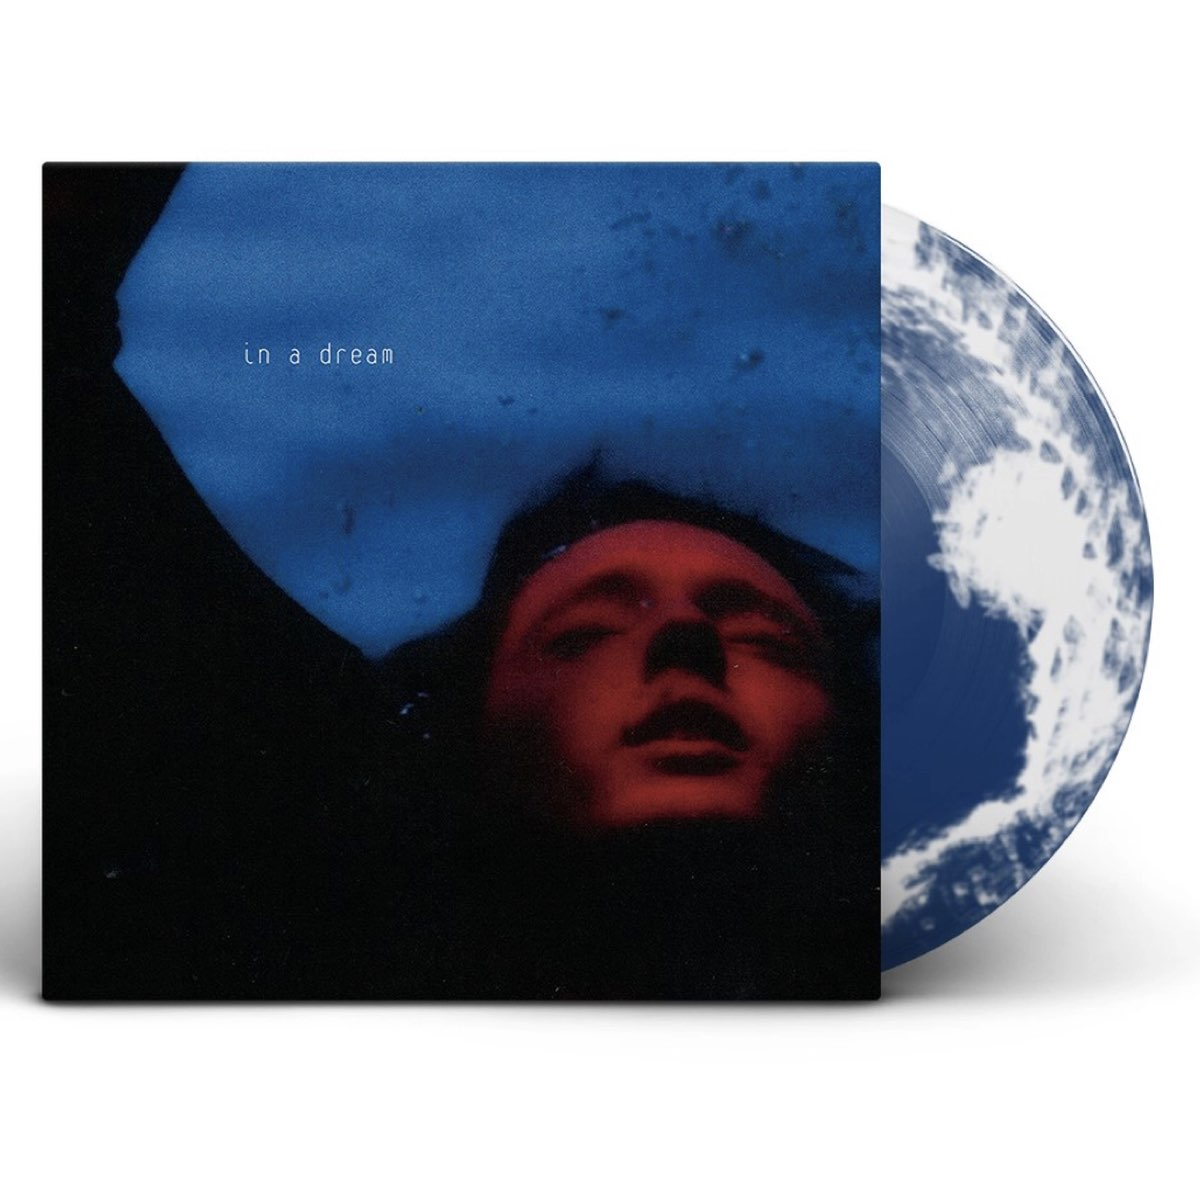 Troye Sivan - In A Dream [Limited Edition - Blue Mist Vinyl]